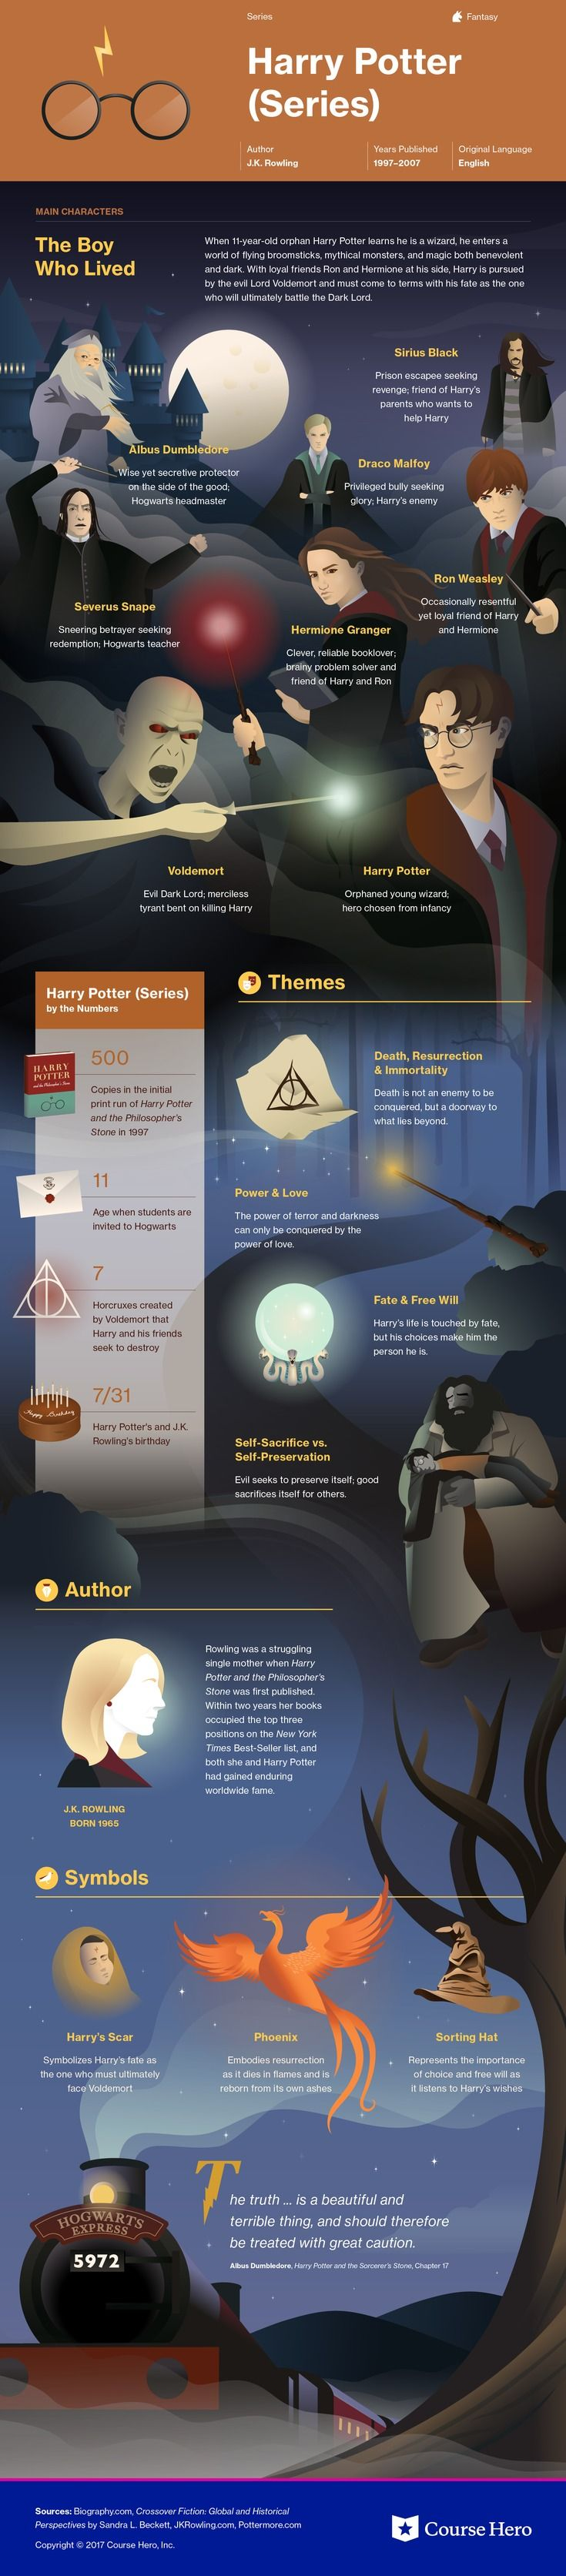 Thi Coursehero Infographic On Harry Potter Serie I Both Visually Stunning And Informative Love Universal Literary Analysi Essay